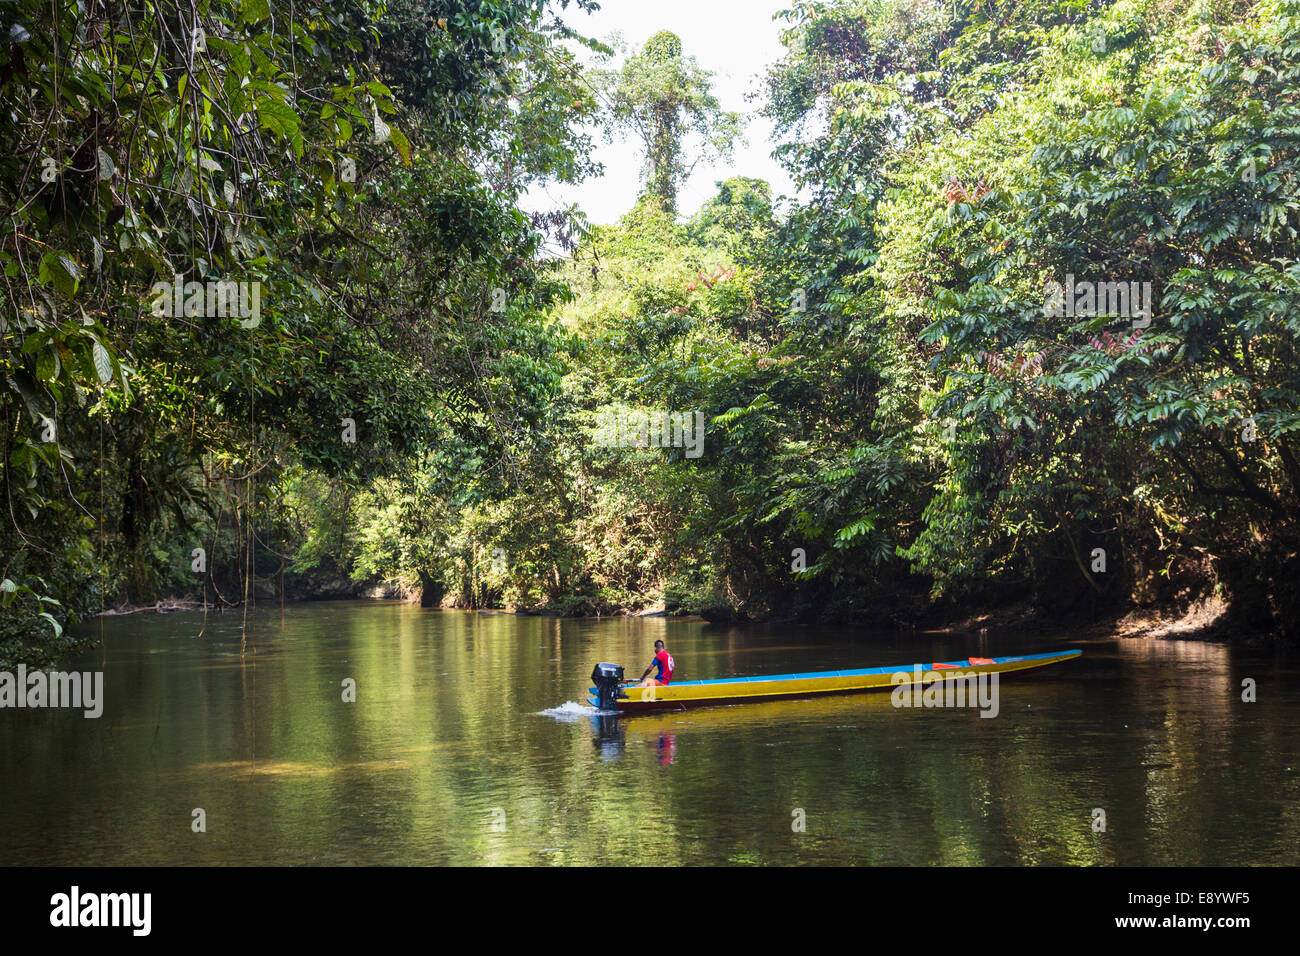 Boatman in longboat on River Melinau at Cave of the Winds, Mulu, Malaysia - Stock Image